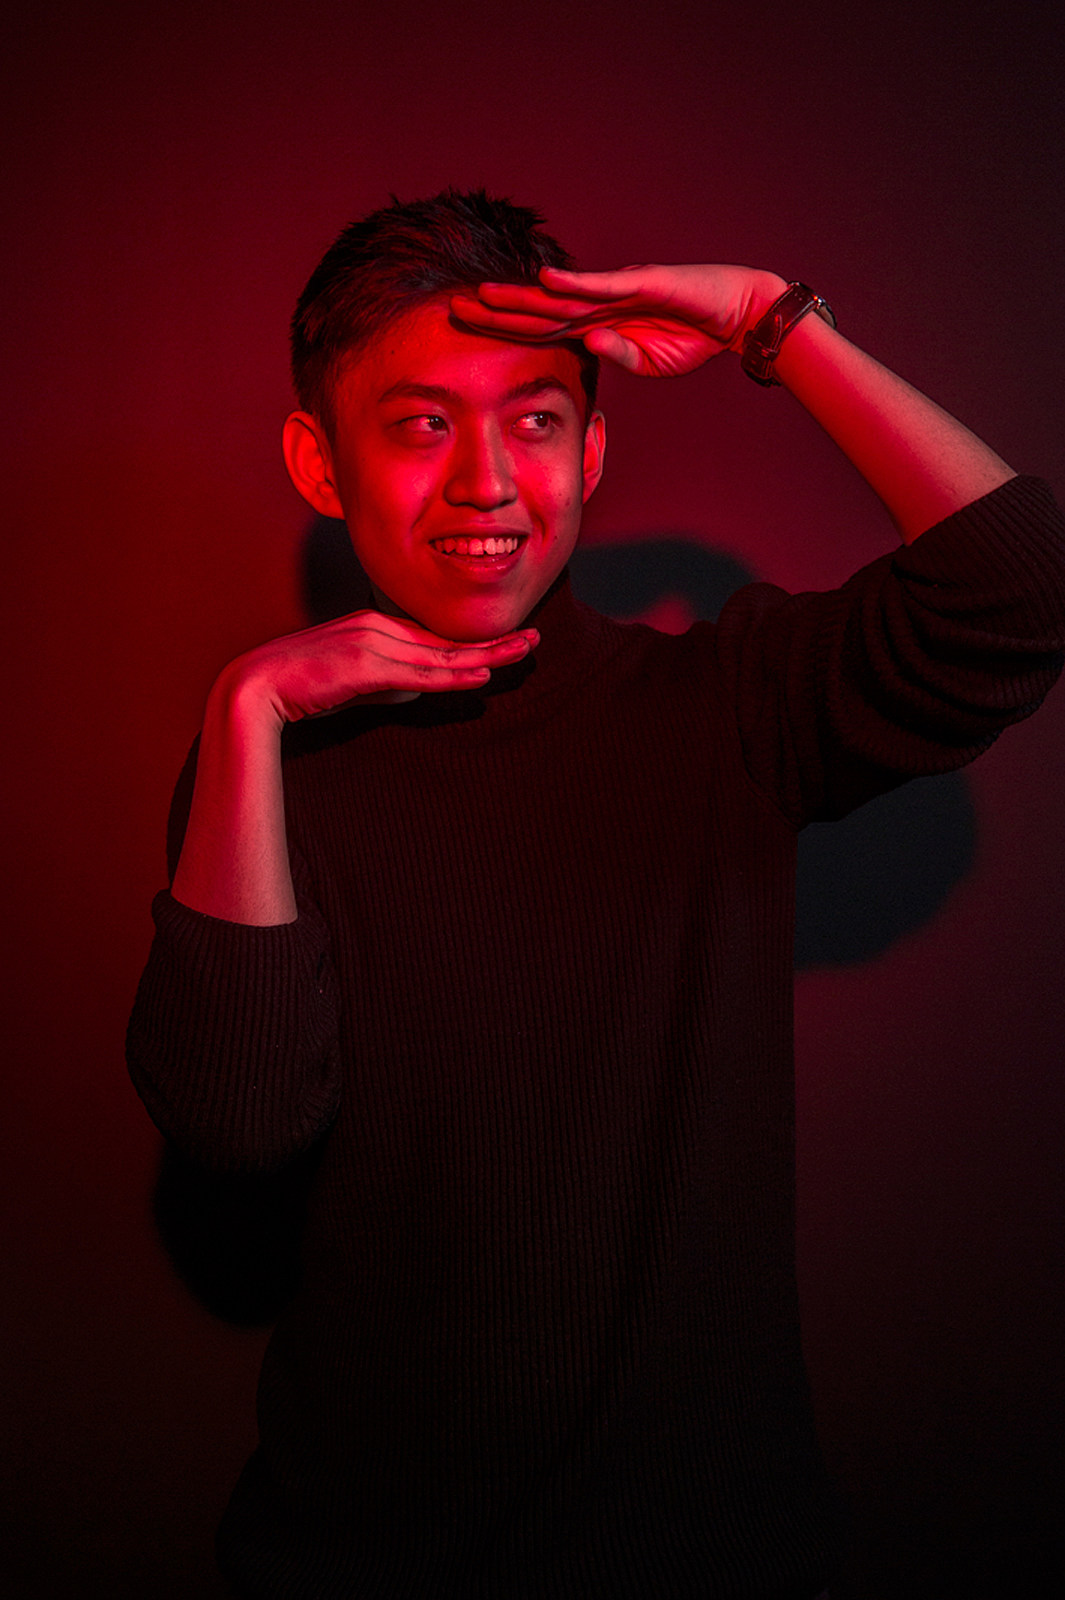 Rich chigga gets serious about rap xxl stopboris Choice Image